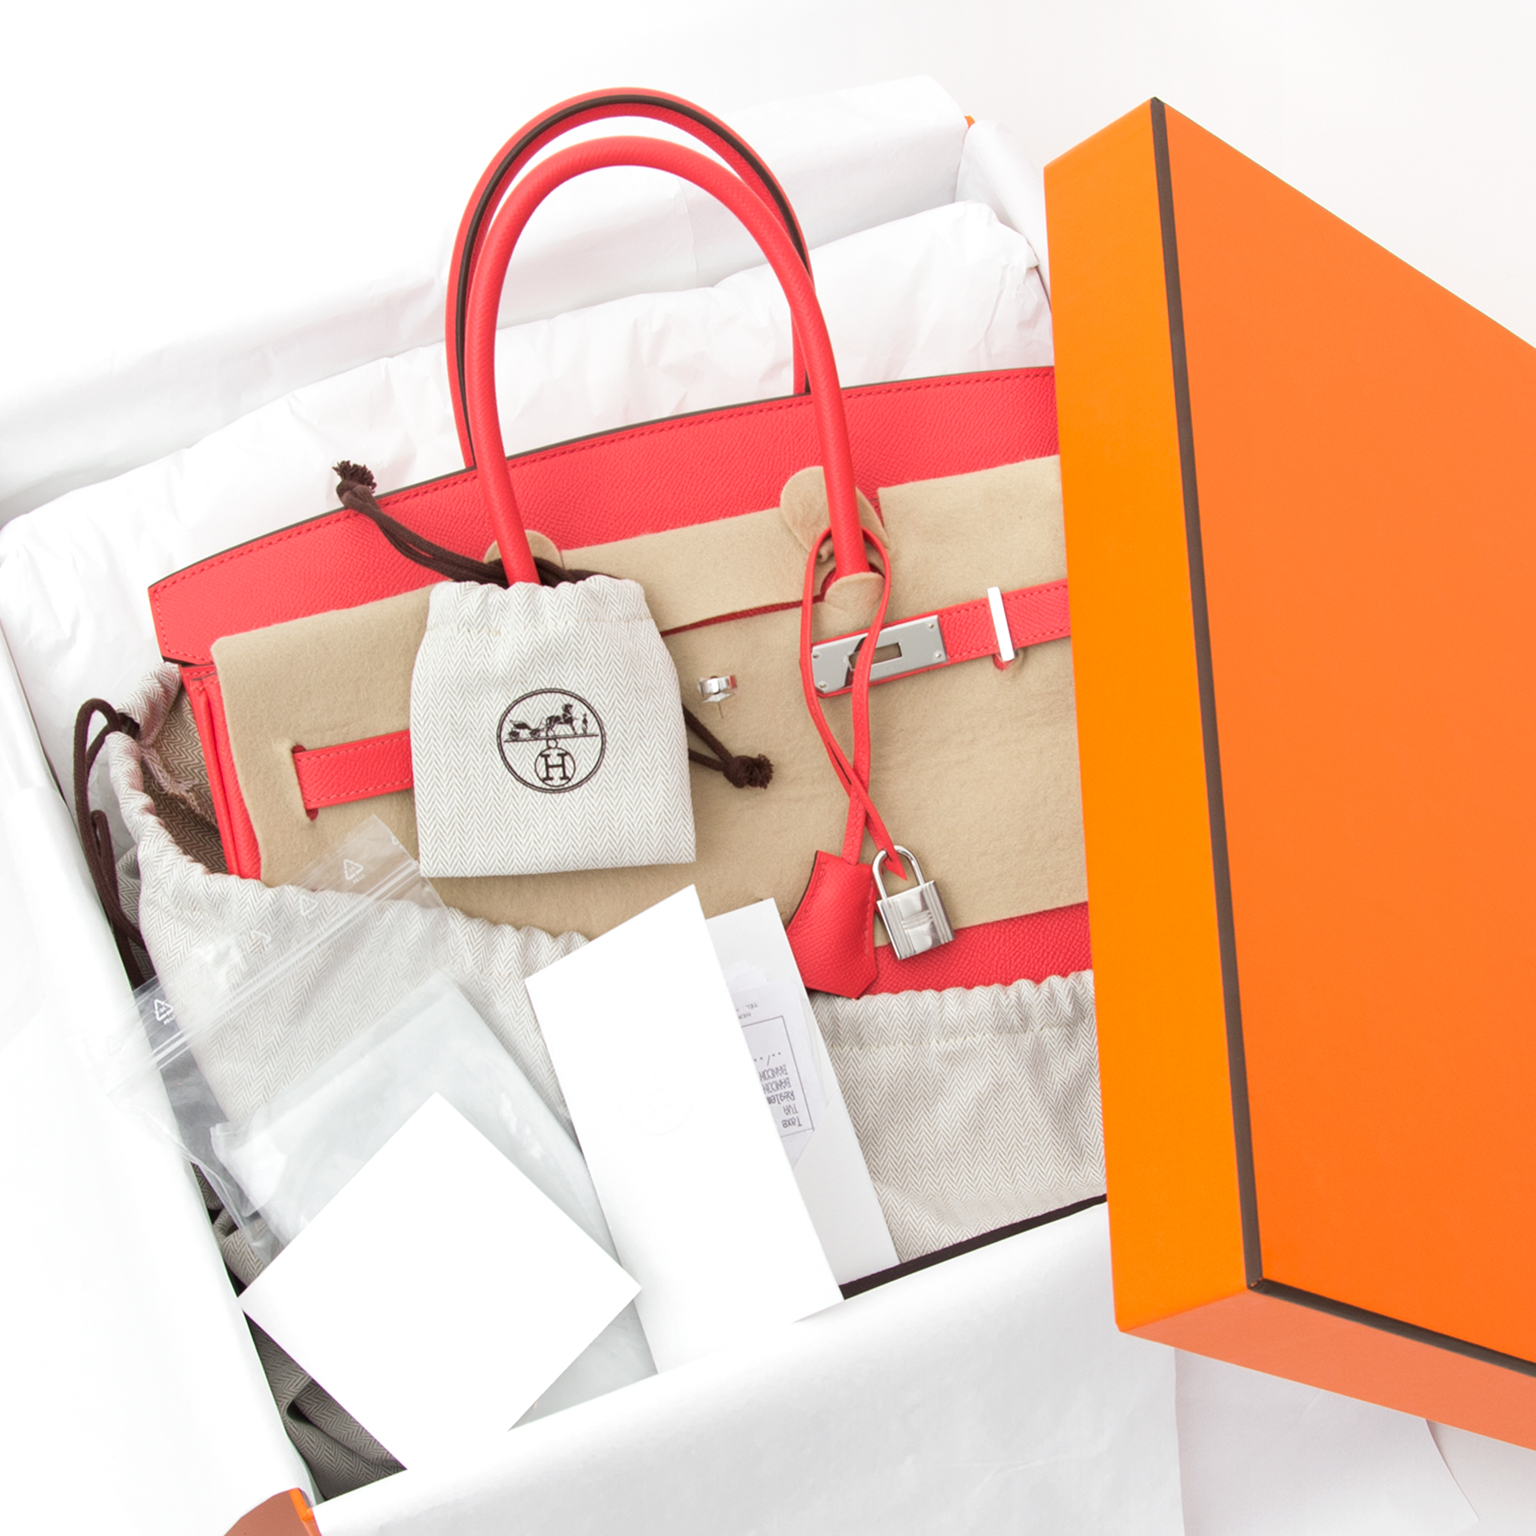 d9903d103919 ... BRAND NEW Hermès Birkin Bag 35 Epsom Rose Jaipur PHW. Buy authentic  secondhand Hermès bags